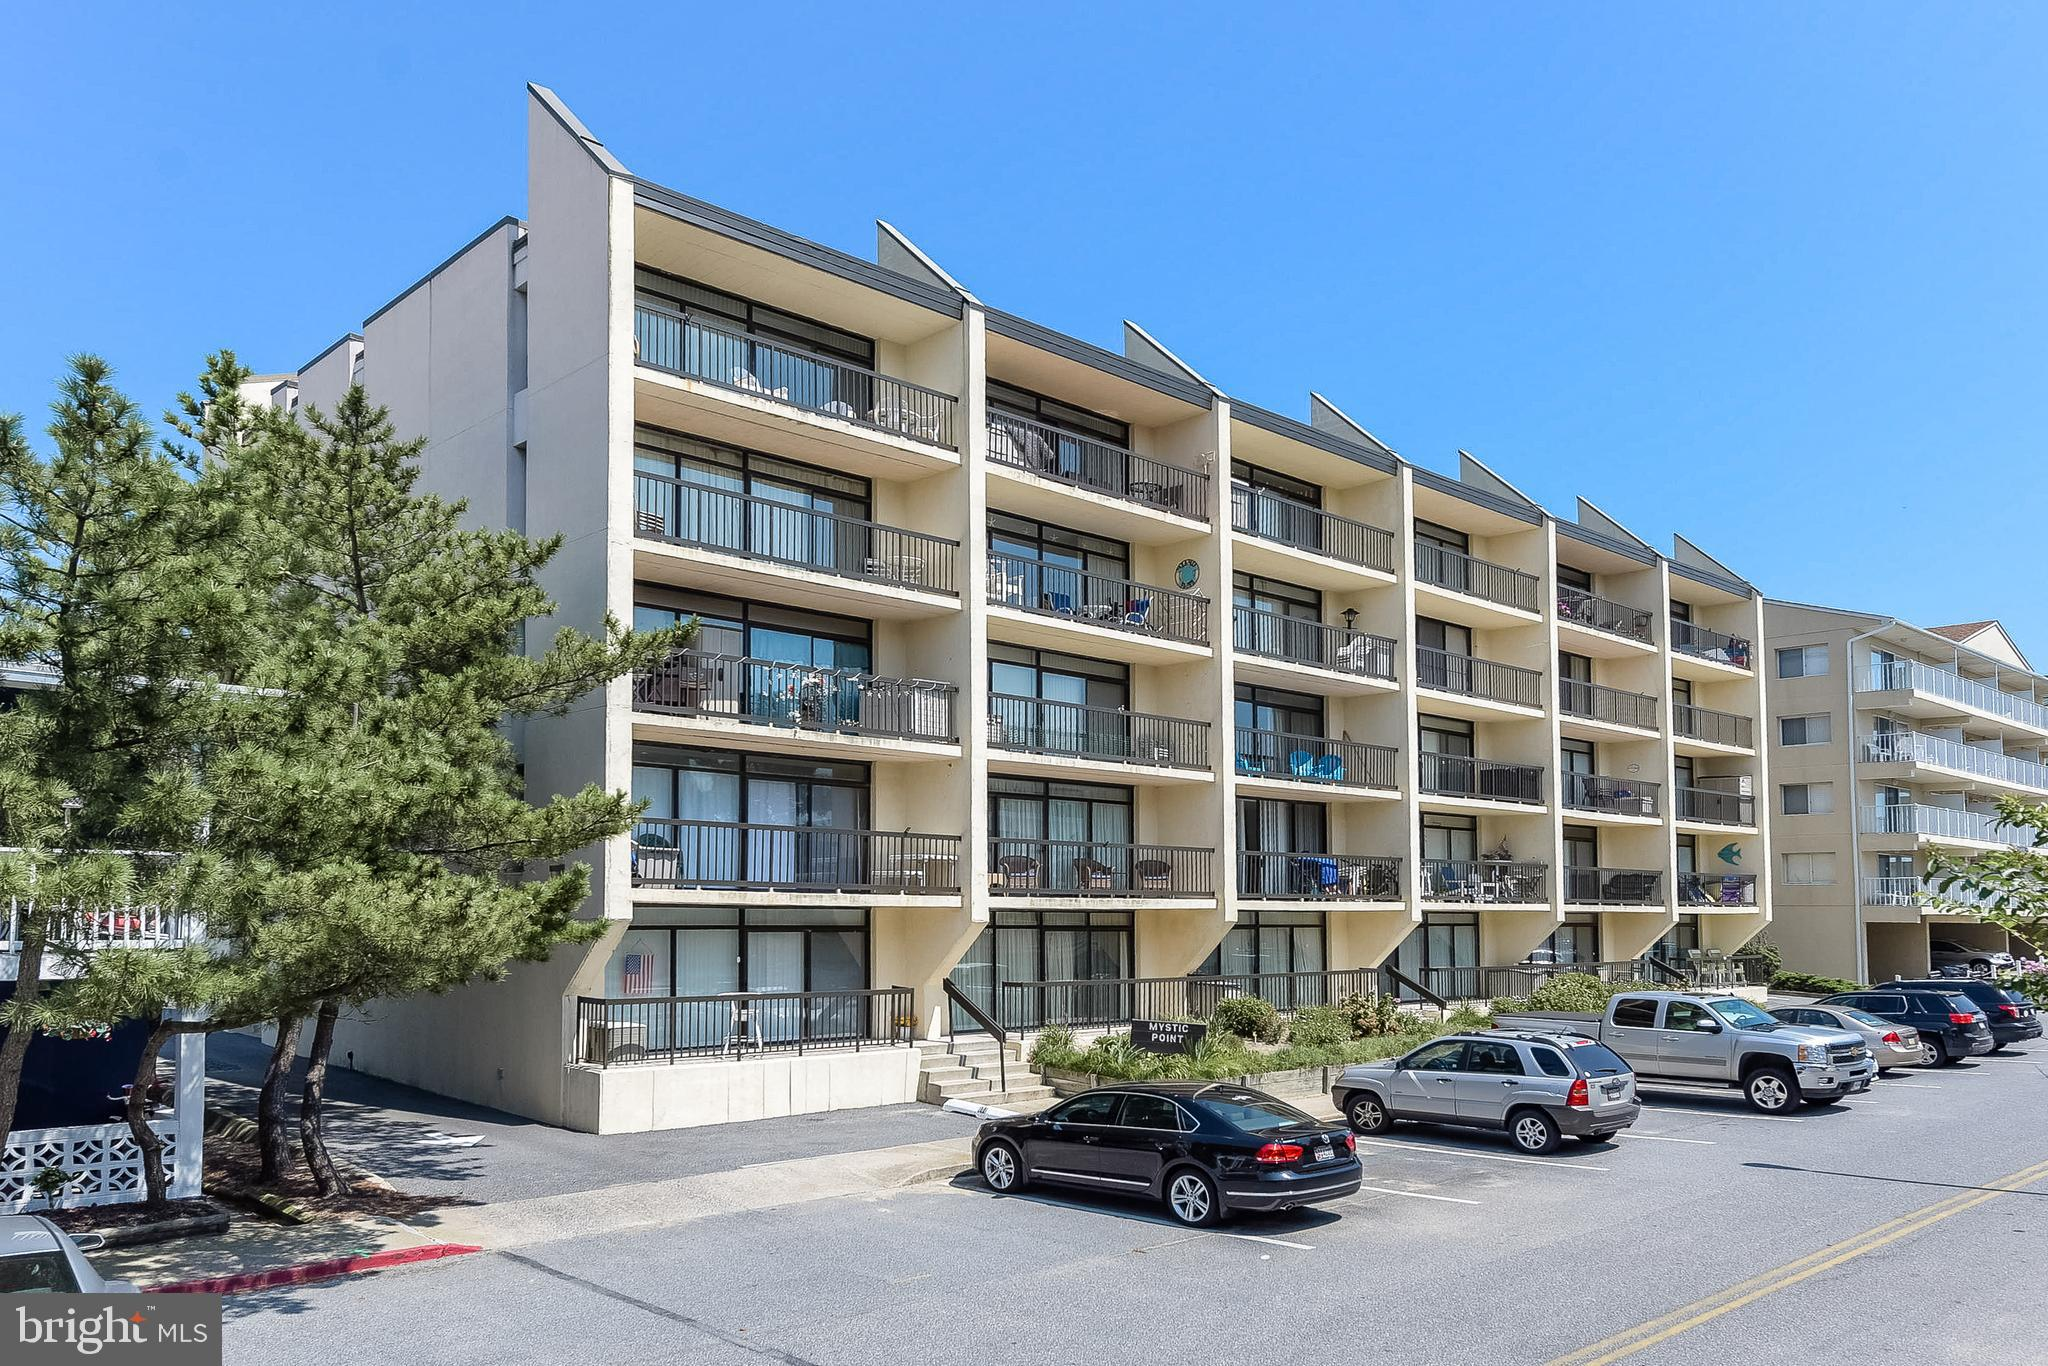 Current contract has 72-hr kick-out so can still be shown. Great Ocean Block 2 bed/2 bath Condo in Masonry Building with an Elevator!  Large living room opens to balcony with views of ocean and southern exposure. New HVAC still under warranty (2018), new bathroom fixtures (2017), flooring (2015), washer/dryer (2013),  electrical outlet/plugs (2017) and newer bathroom updates including toilets, sinks and tubs. Plus recently painted. Excellent location in mid-town, close to so much including the Convention Center. Lots of restaurants, shopping and entertainment just steps away. A low density beach means less crowding. Owner's didn't rent, but could easily be a rental. All this plus low condo fees and strong condo association/management. Don't miss out on owning this as your new beach home!